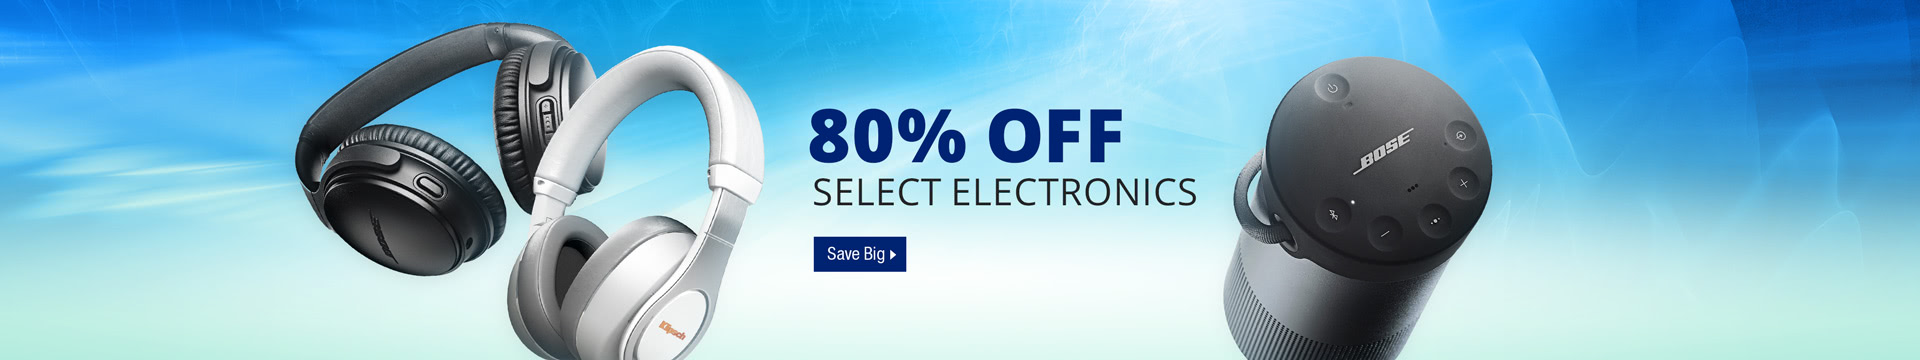 Computer parts laptops electronics and more newegg 80 off select electronics fandeluxe Choice Image